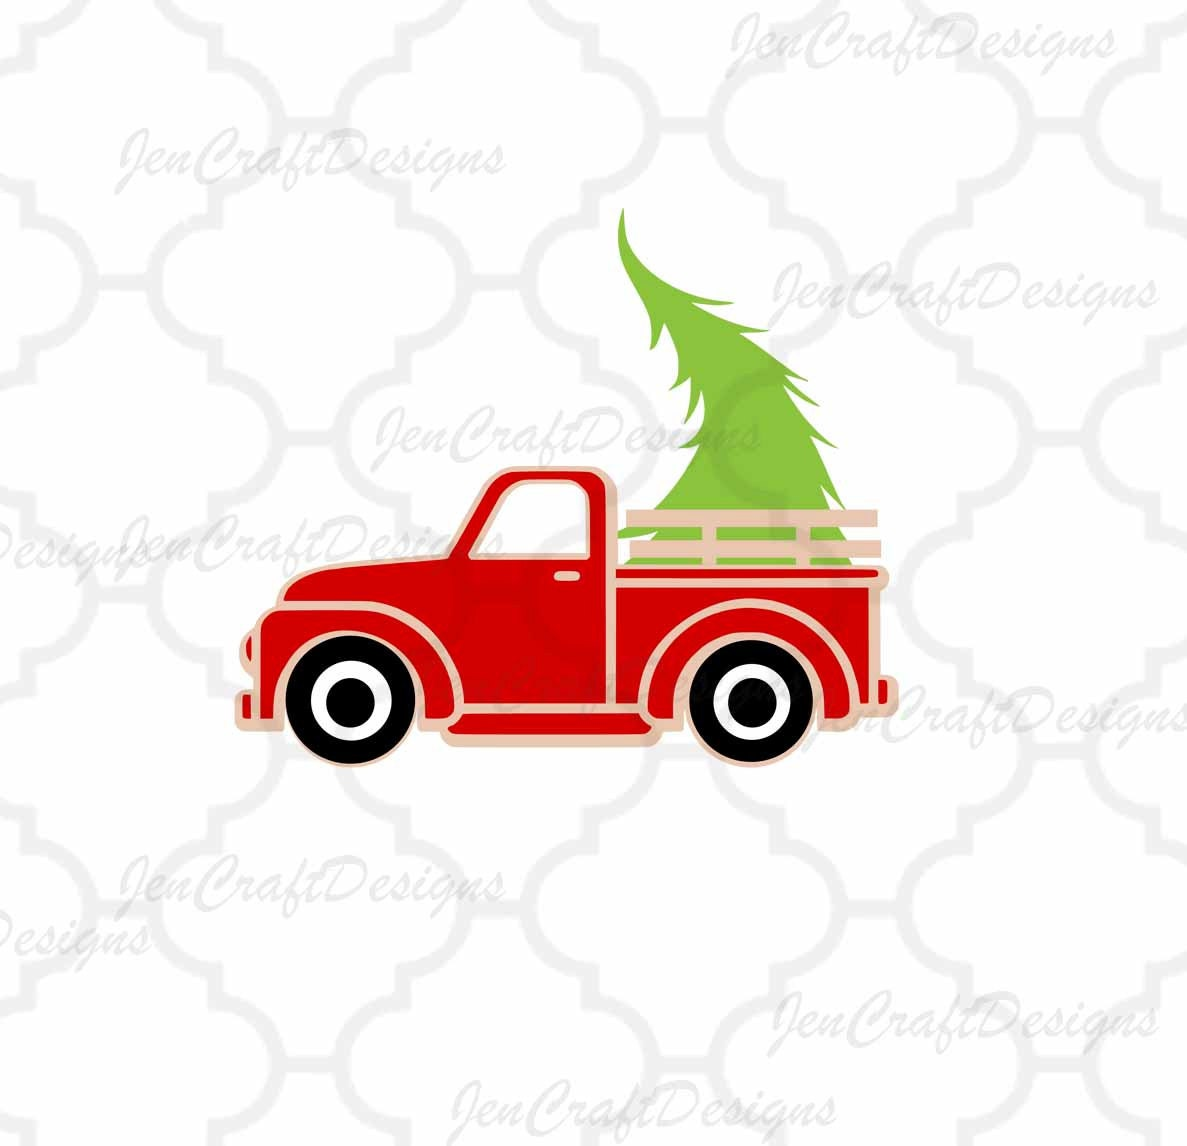 Christmas Truck Svg.Christmas Truck Svg Antique Truck With Tree Svg Vintage Svg